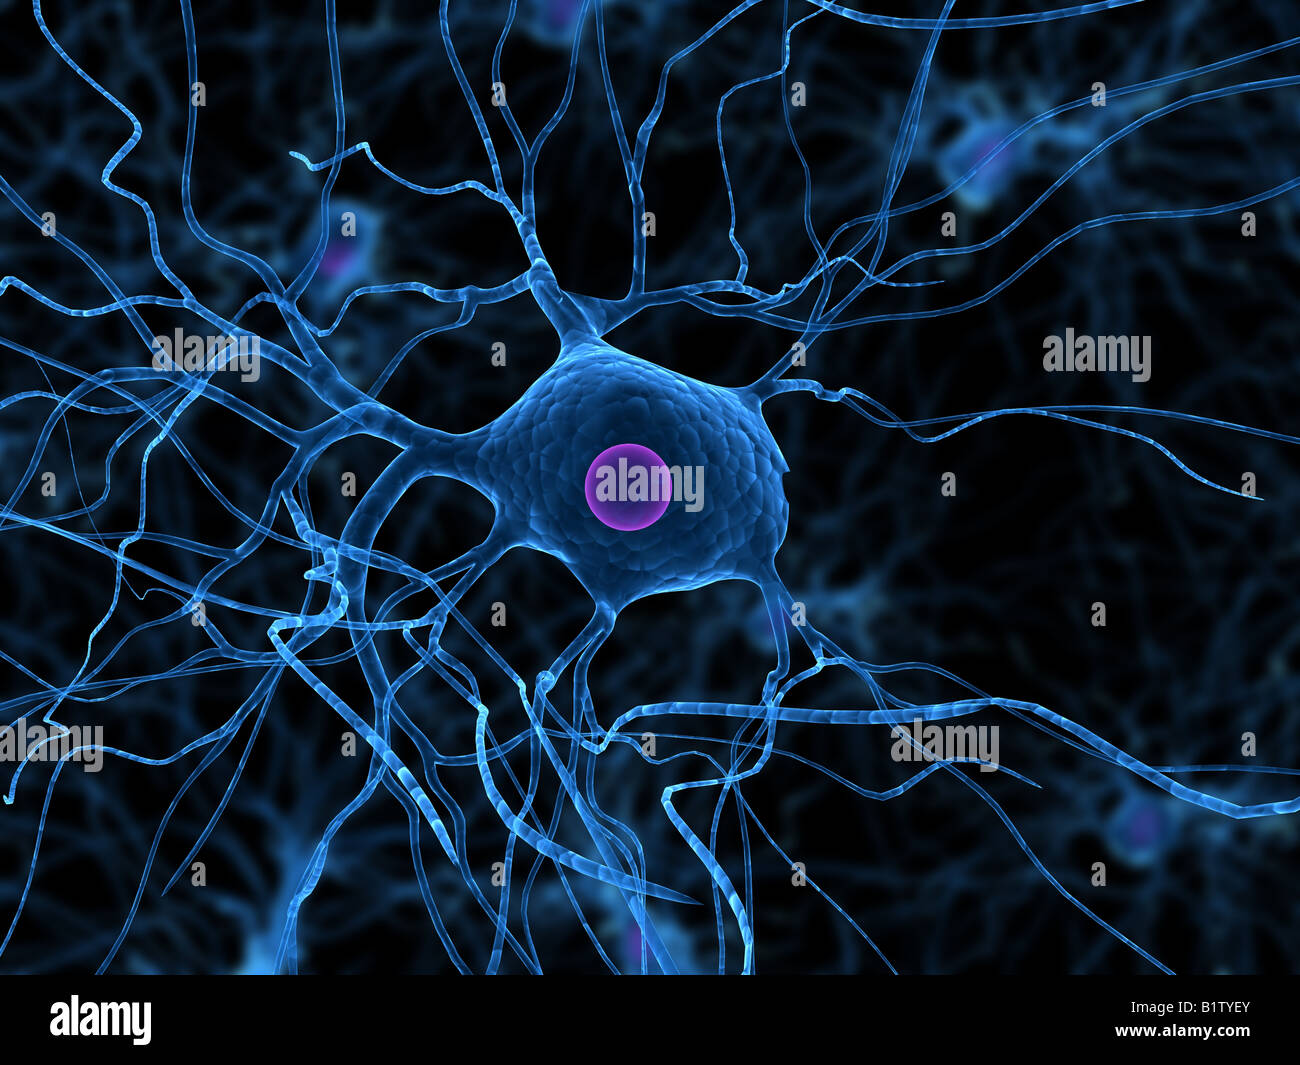 nerve cell - Stock Image